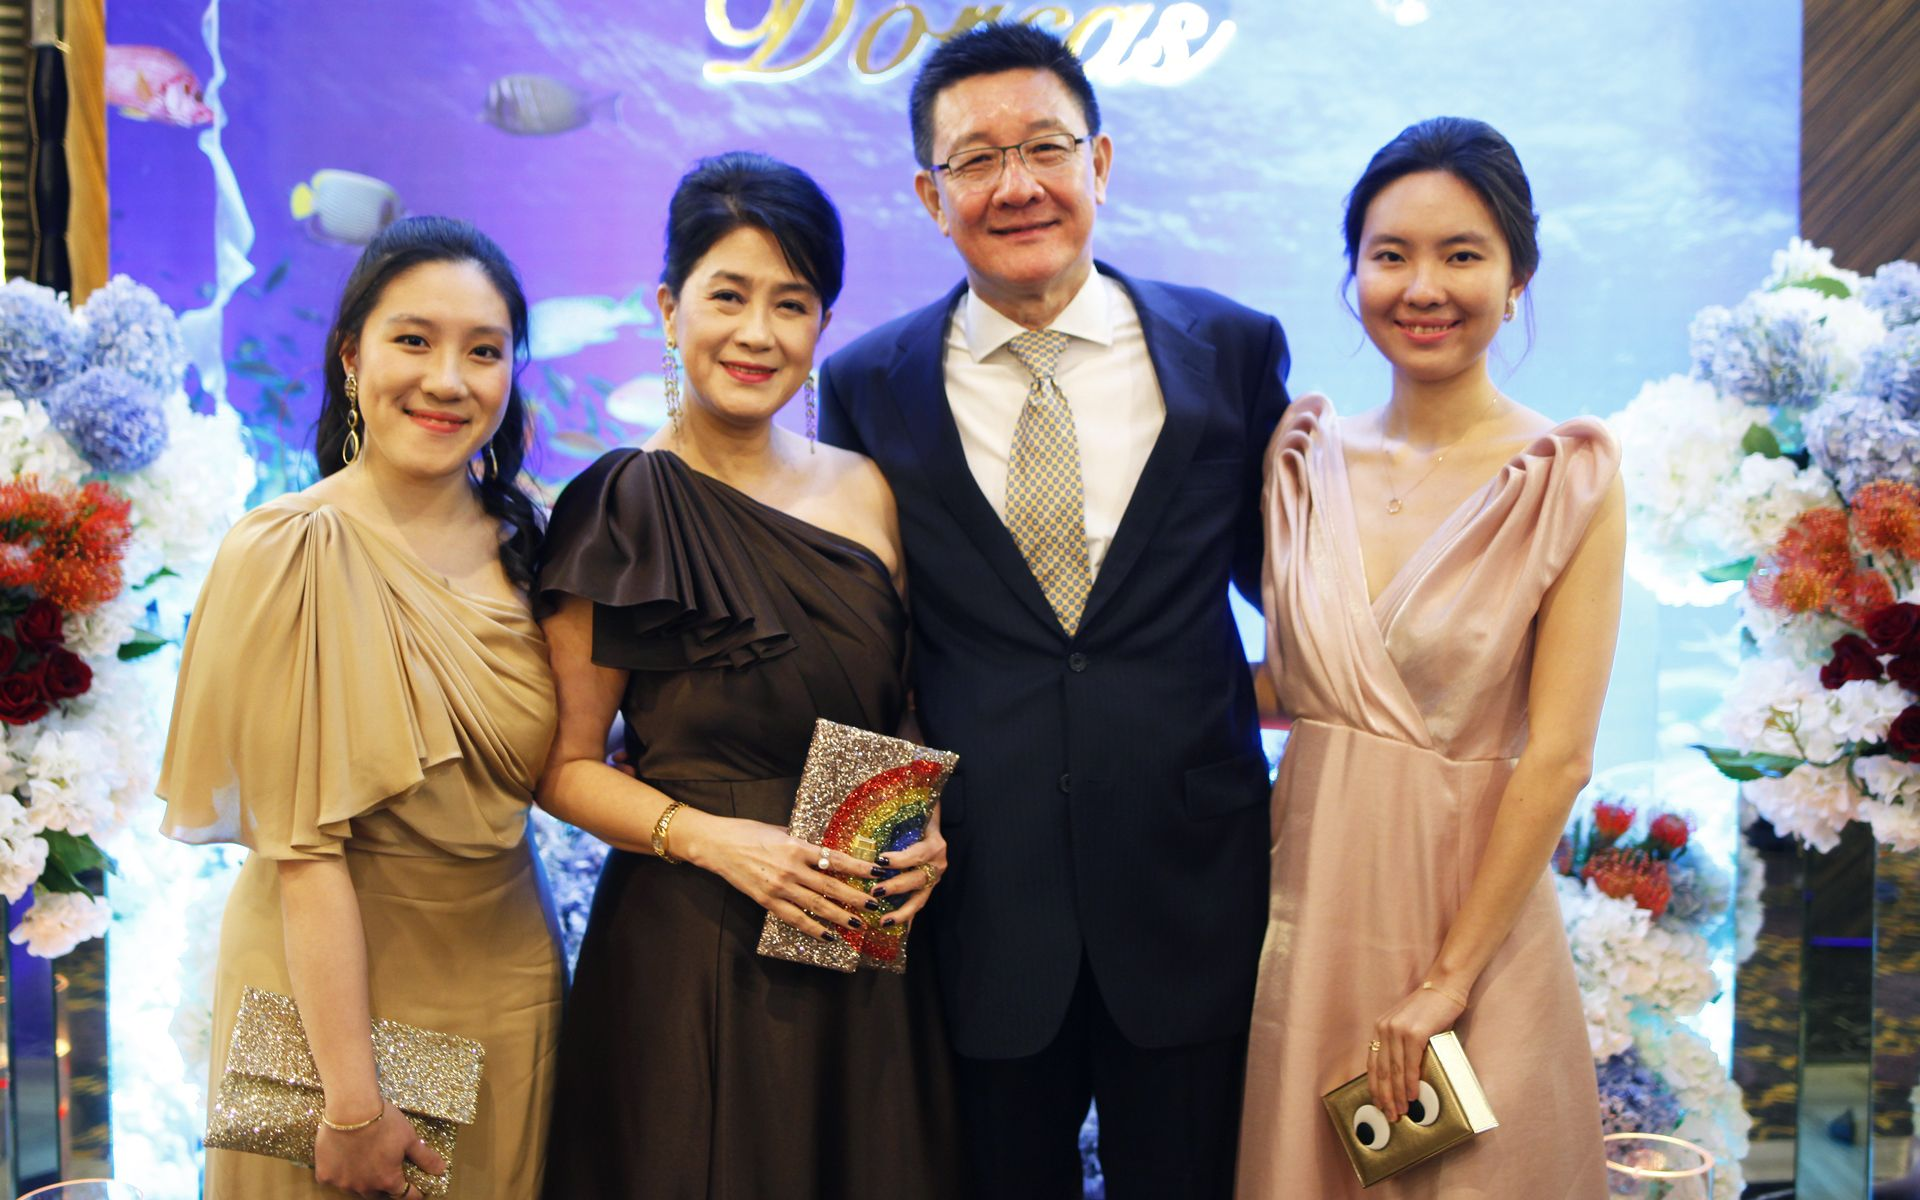 Teh Wen Li, Soo Shea Pin, Terrence Teh and Teh Wen Fei